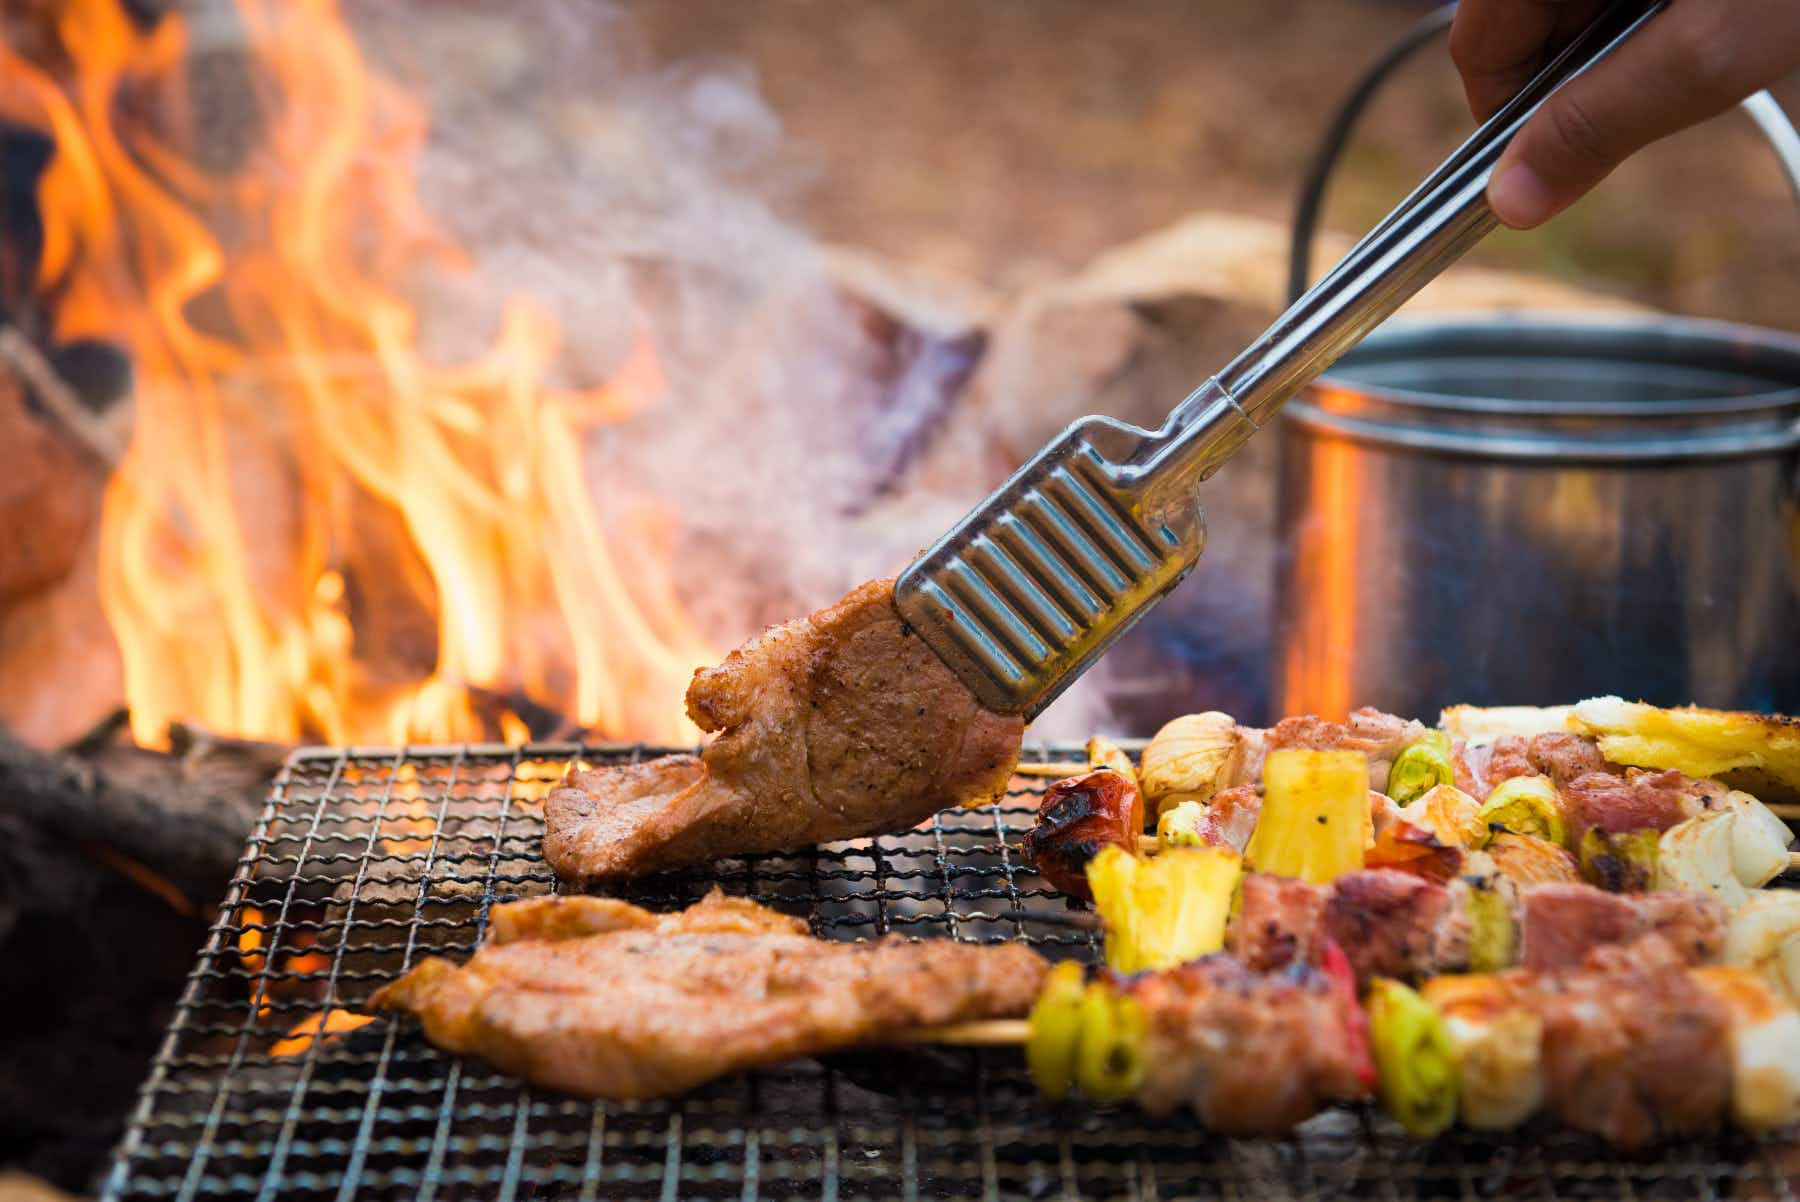 Get paid $10,000 to eat the best barbecue meat in the US